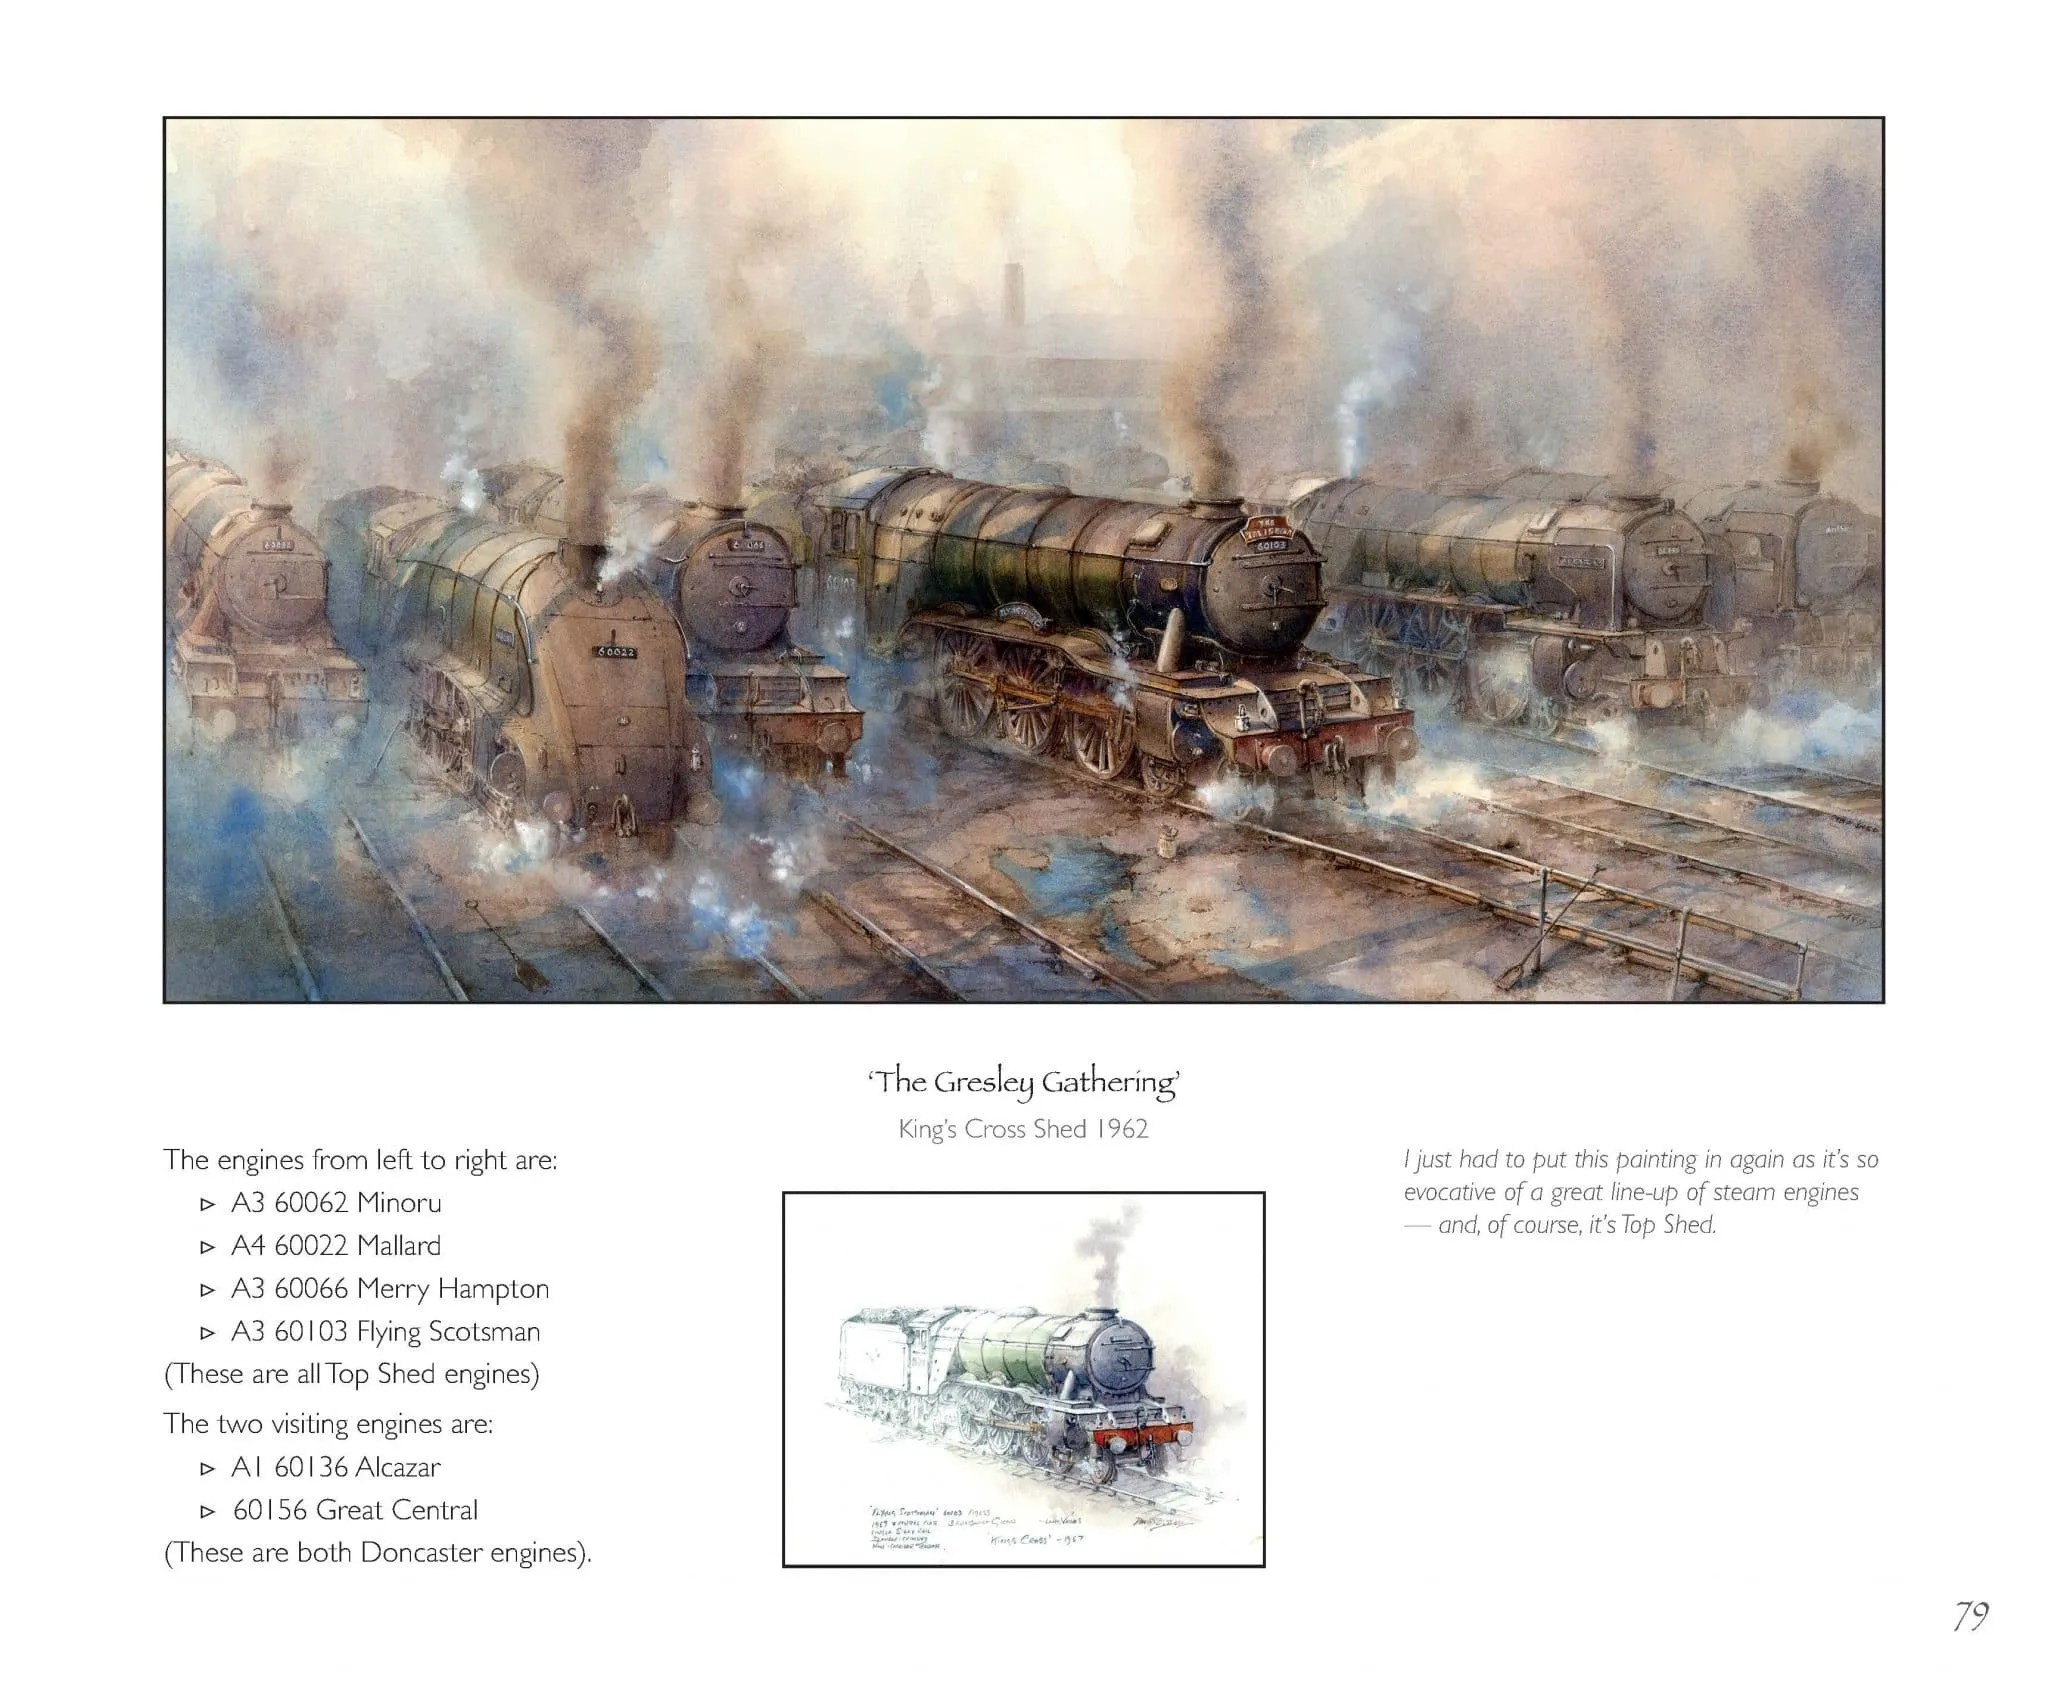 Gresley Gathering painting from Odyssey in Steam book of railway paintings